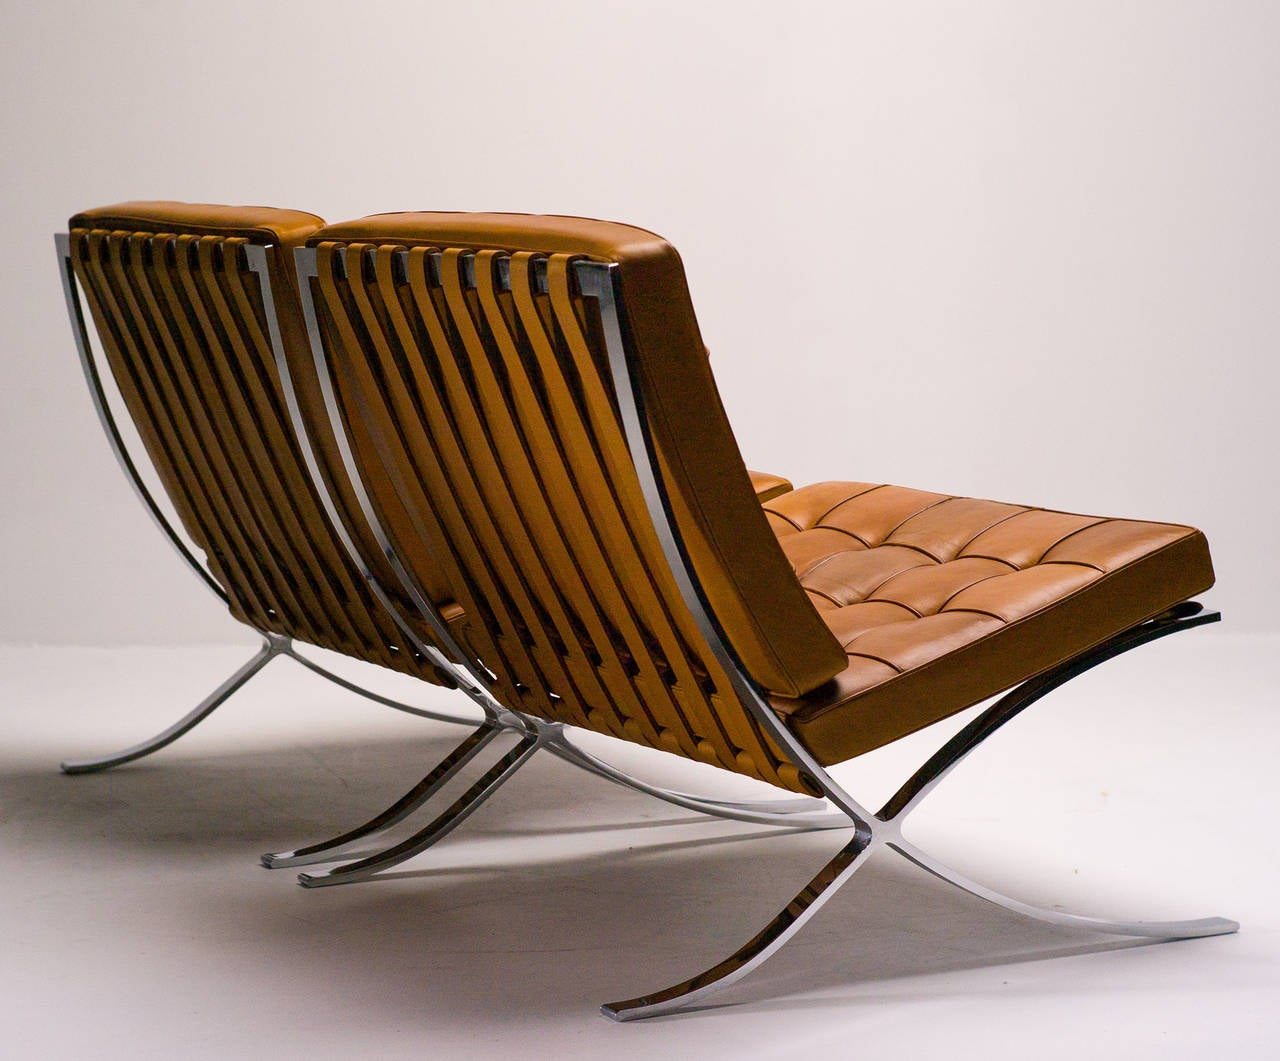 Barcelona Sessel Knoll Barcelona Chairs In Saddle Leather By Mies Van Der Rohe For Knoll International